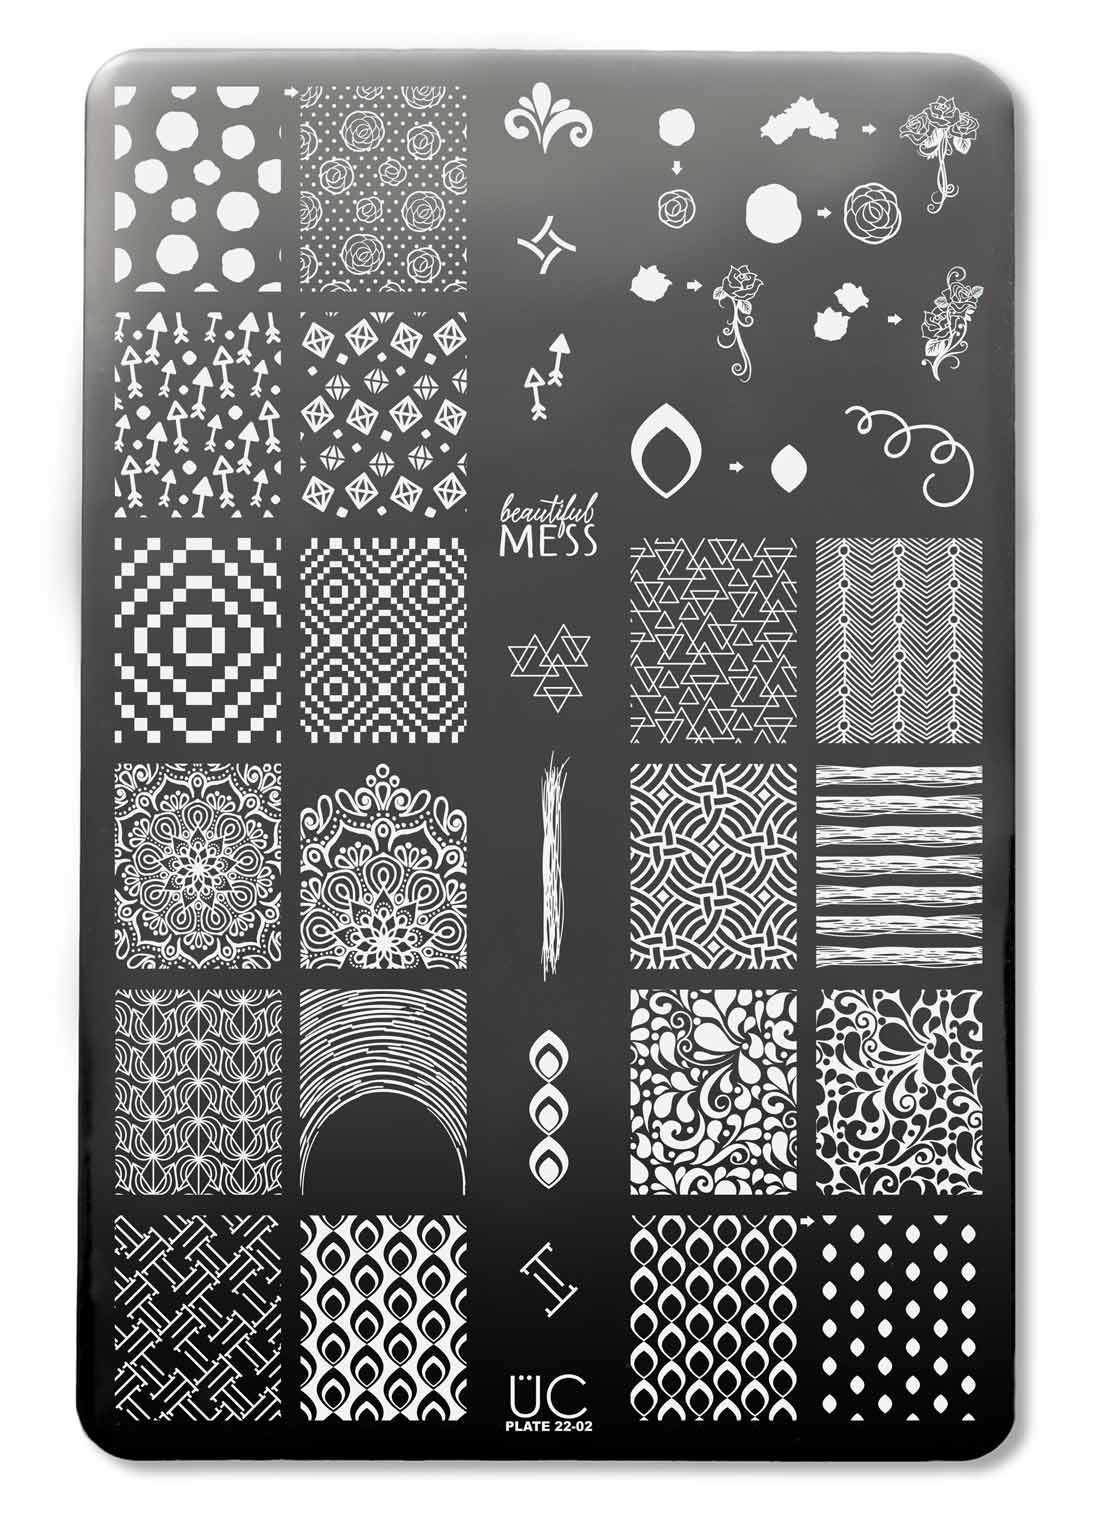 0e9d1c90918 This 3 stamping plate set has loads of beautiful designs and patterns like  jewels and gems, swirling waves, mandalas, polka dots and roses, ...